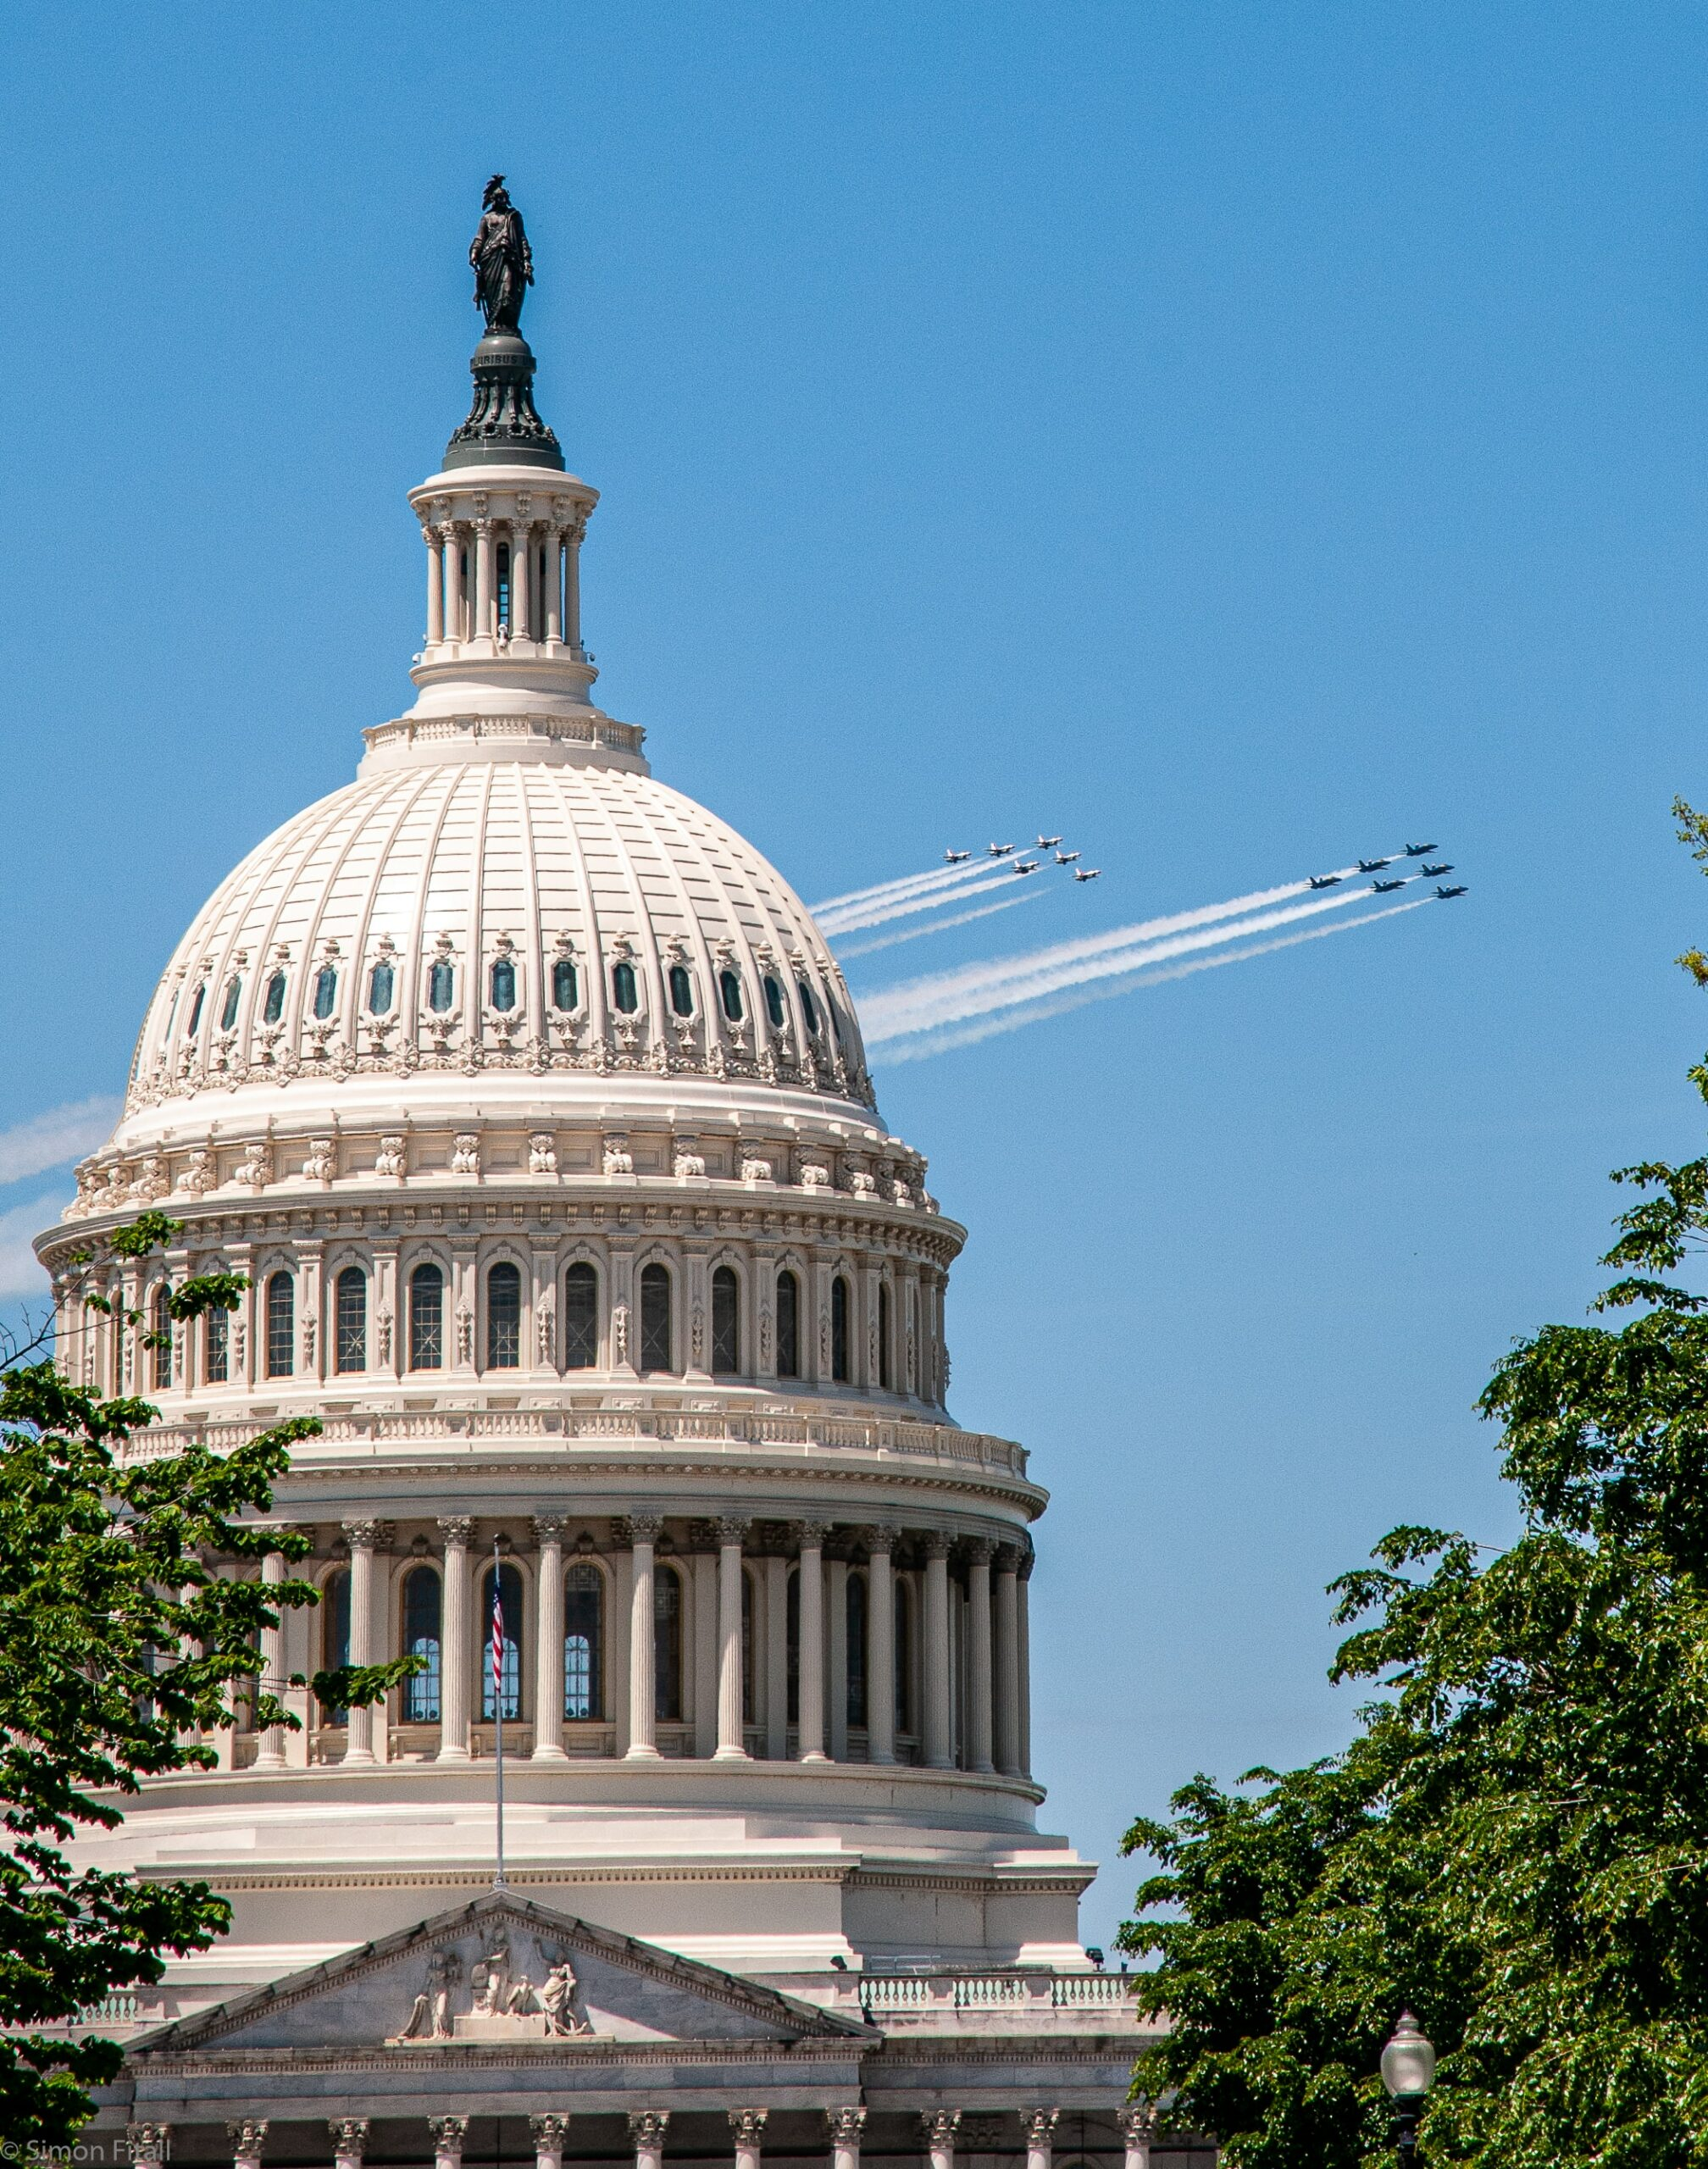 US Navy Blue angels and US Air Force Thunderbirds flypast the US Capitol Building, May 2nd, 2020.